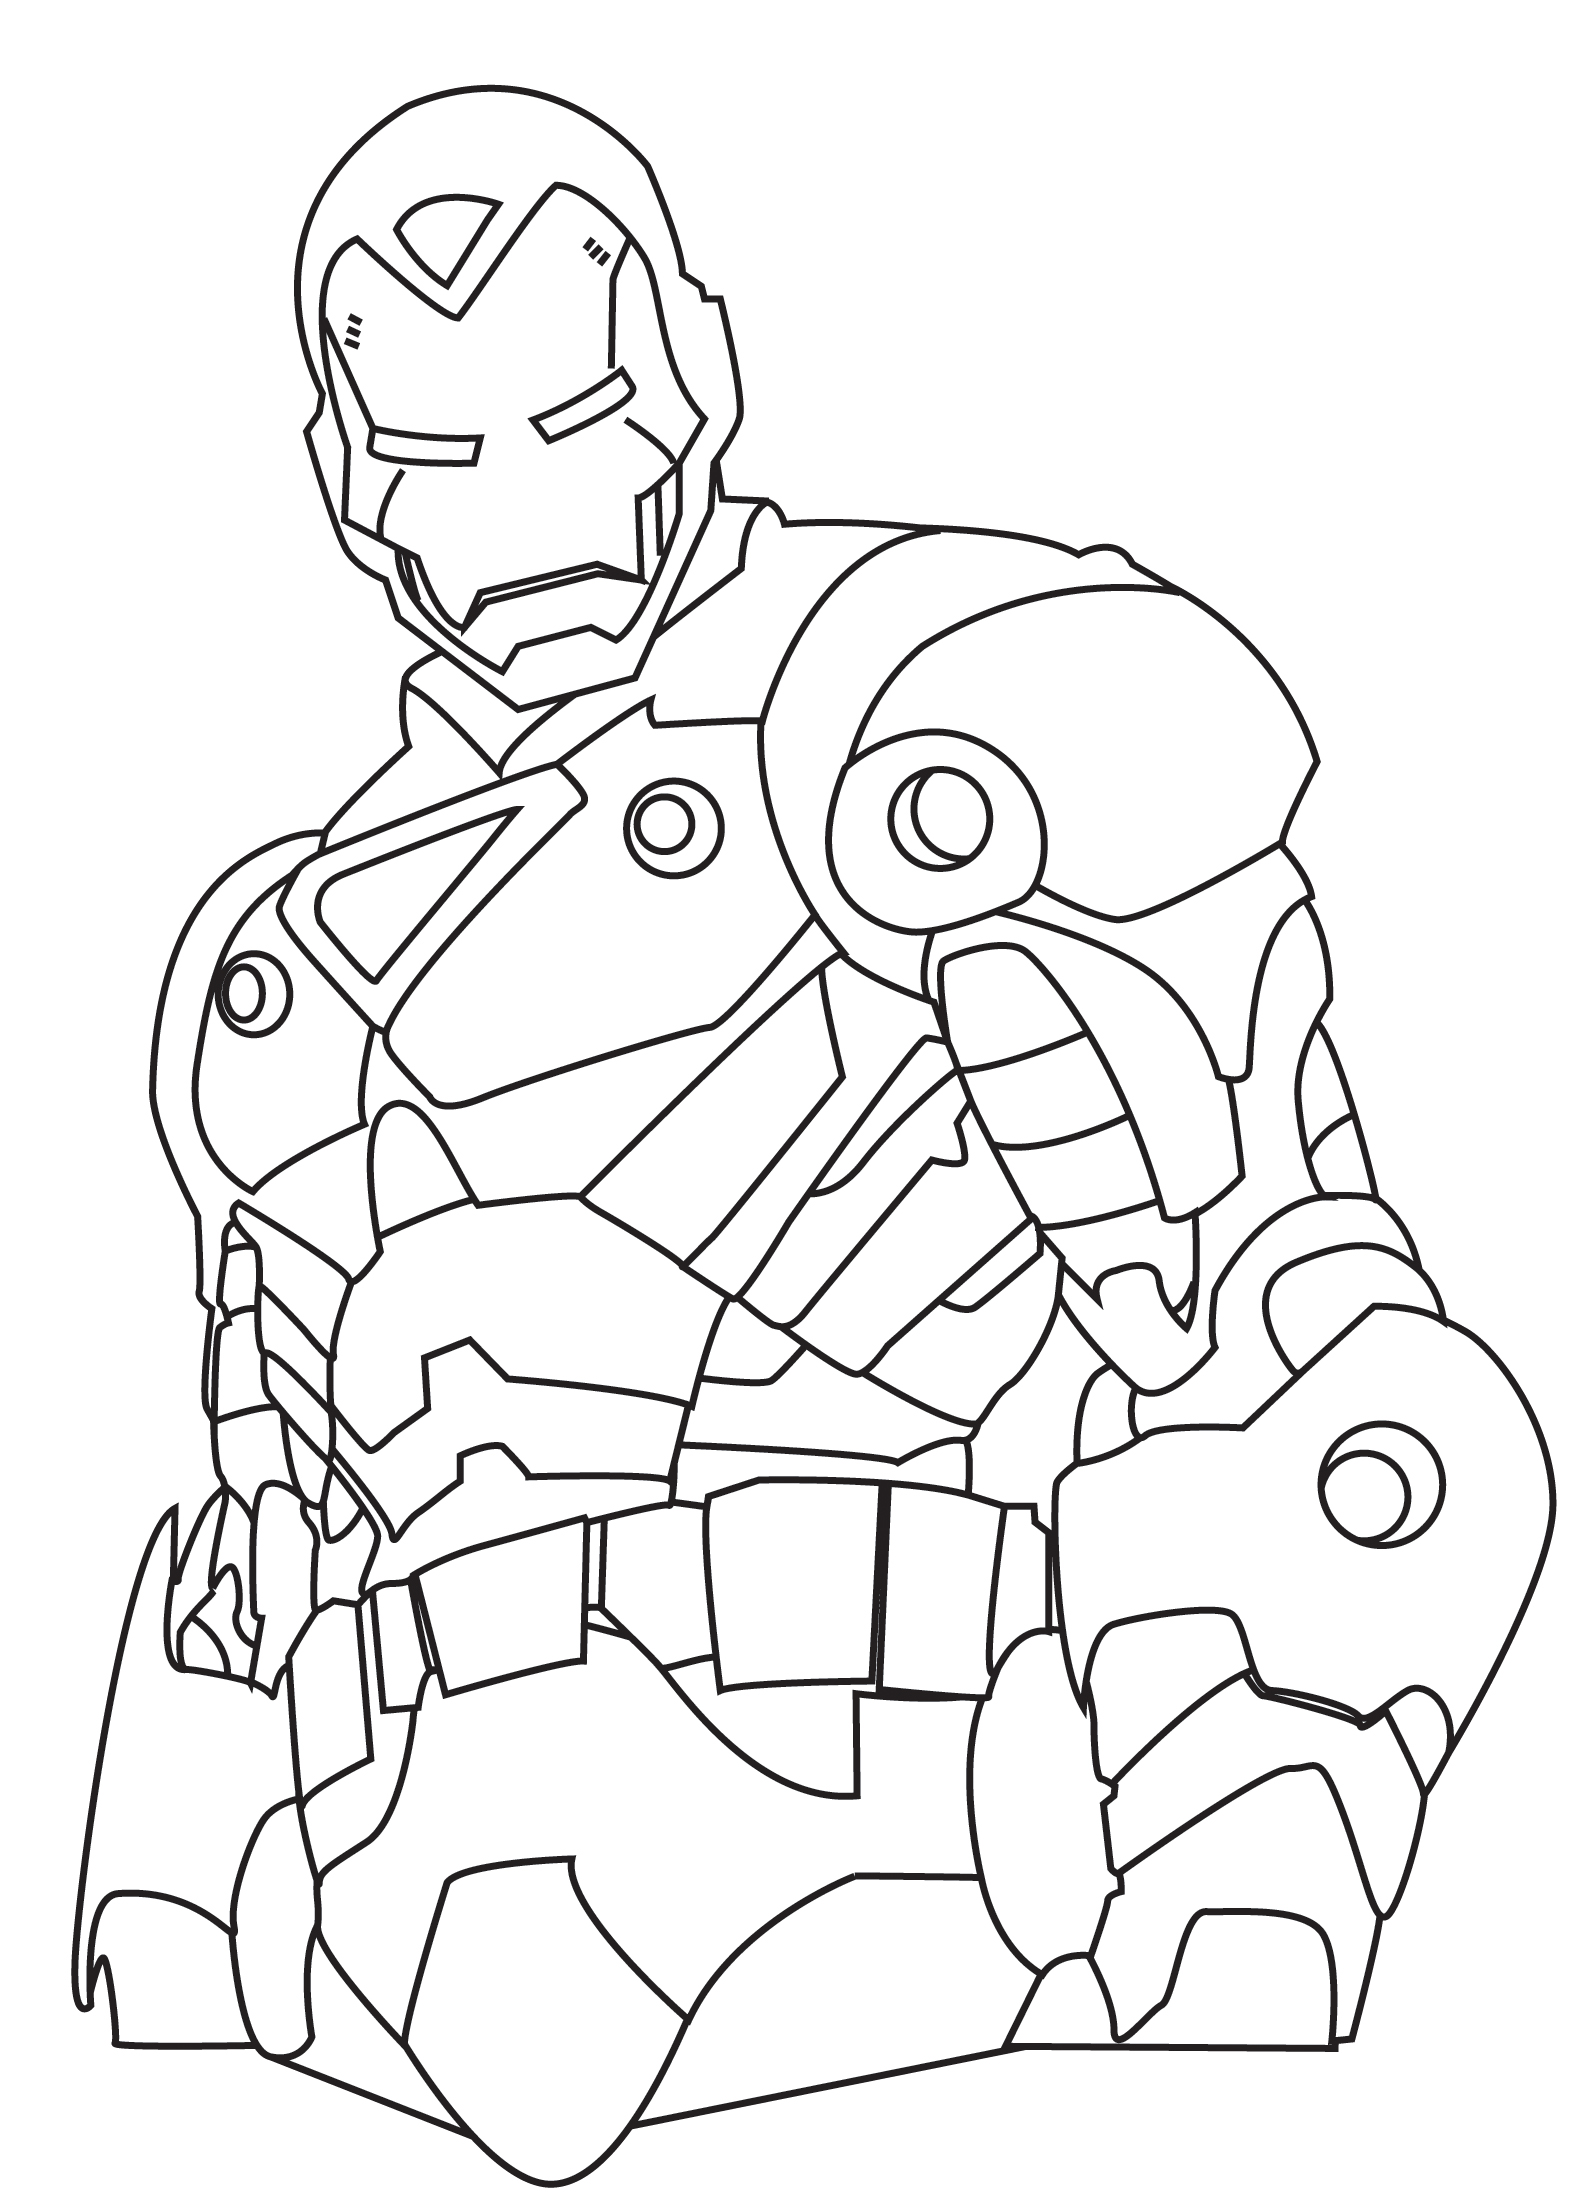 Iron man clipart black and white png black and white Free Iron Man Clipart Black And White, Download Free Clip ... png black and white